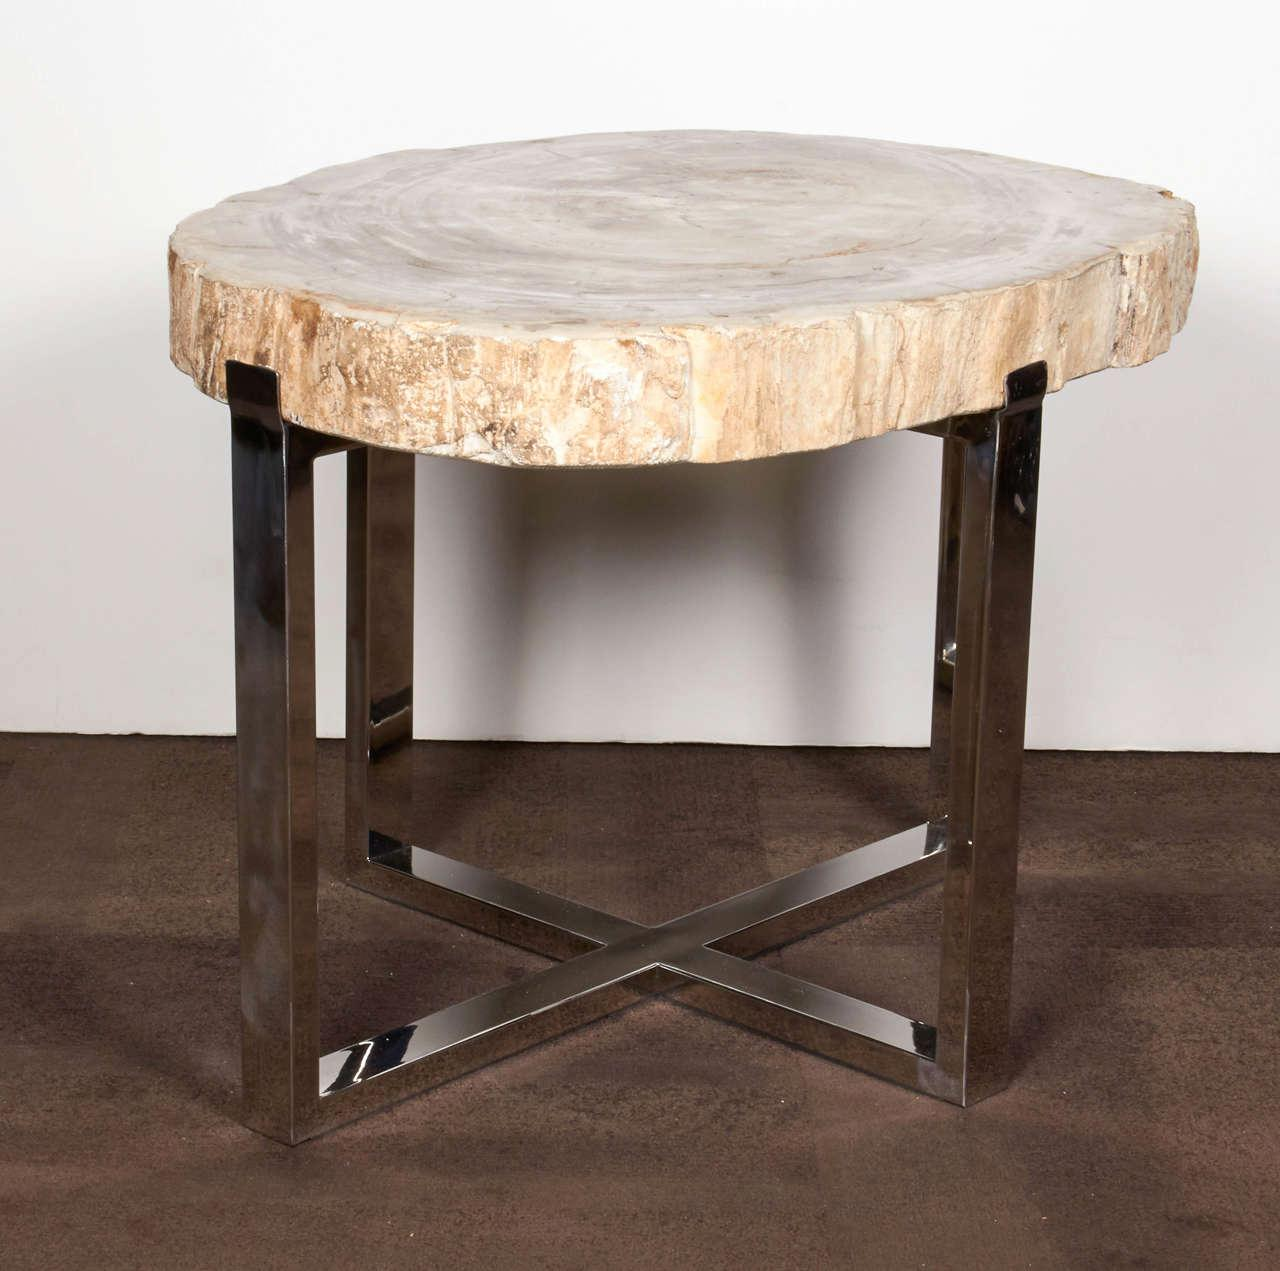 petrified wood table dining with beautiful appearance accent white contemporary coffee long skinny console counter height sets west elm box frame side ideas for living room small